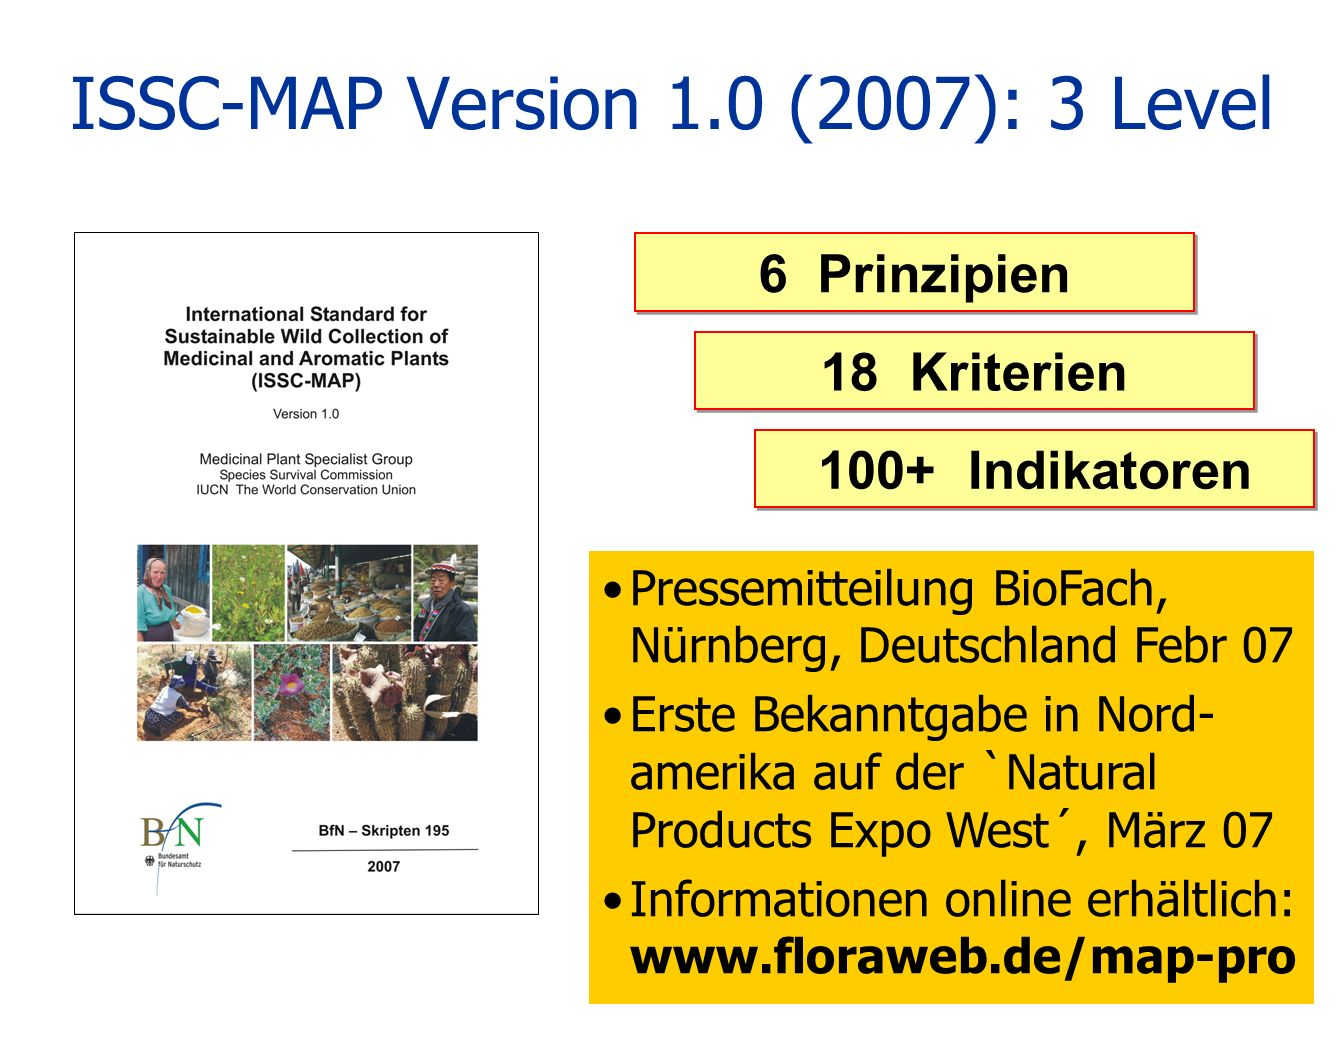 ISSC-MAP Version 1.0 (2007): 3 Level